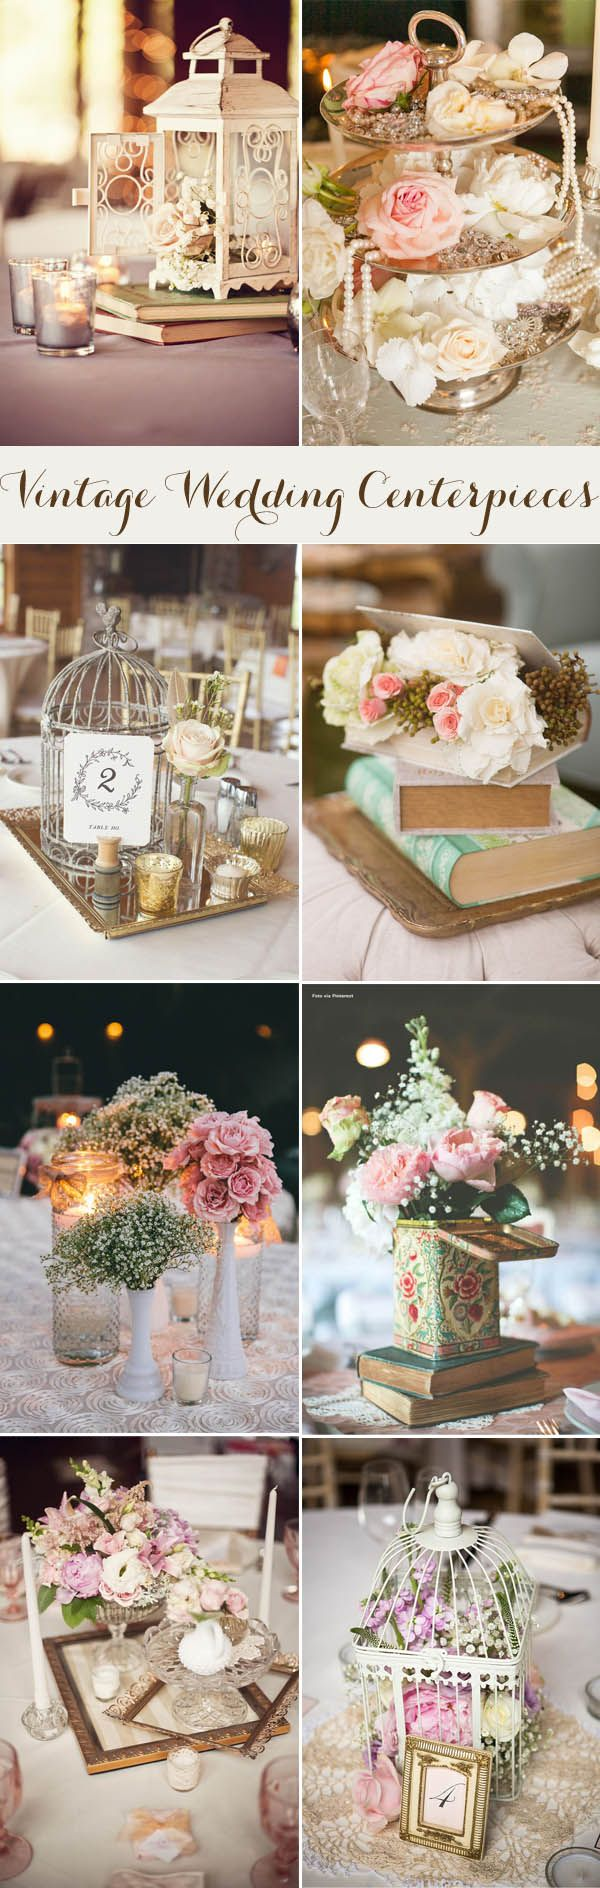 Mexican wedding decoration ideas   Inspiring Vintage Wedding Centerpieces Ideas  Vintage wedding